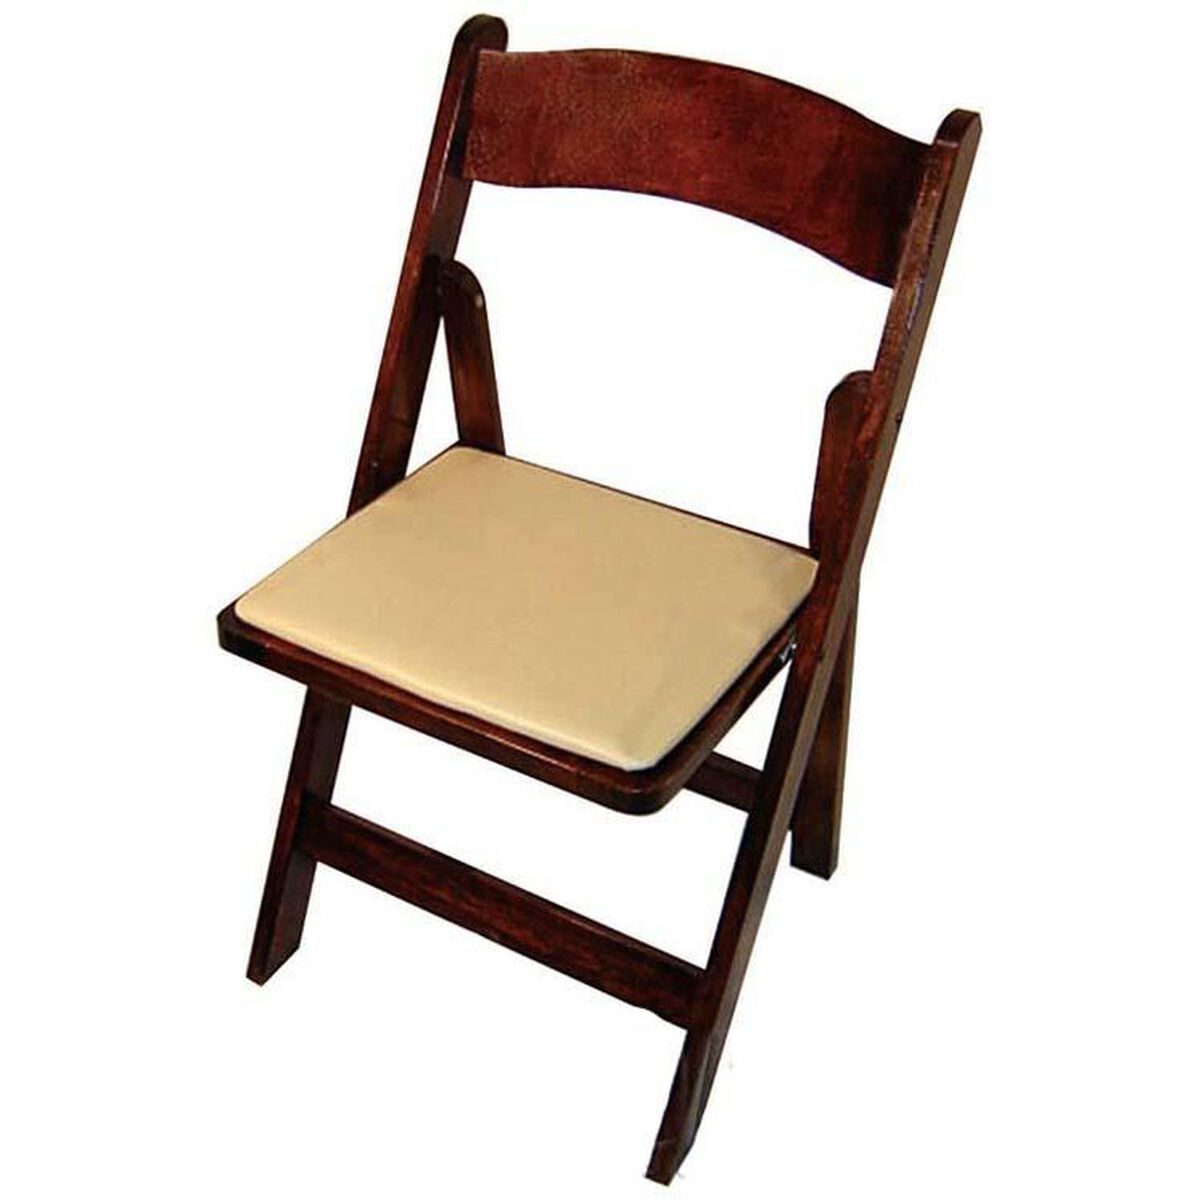 Our Classic Series 30 5 H Wood Folding Chair Fruitwood Tan Vinyl Seat